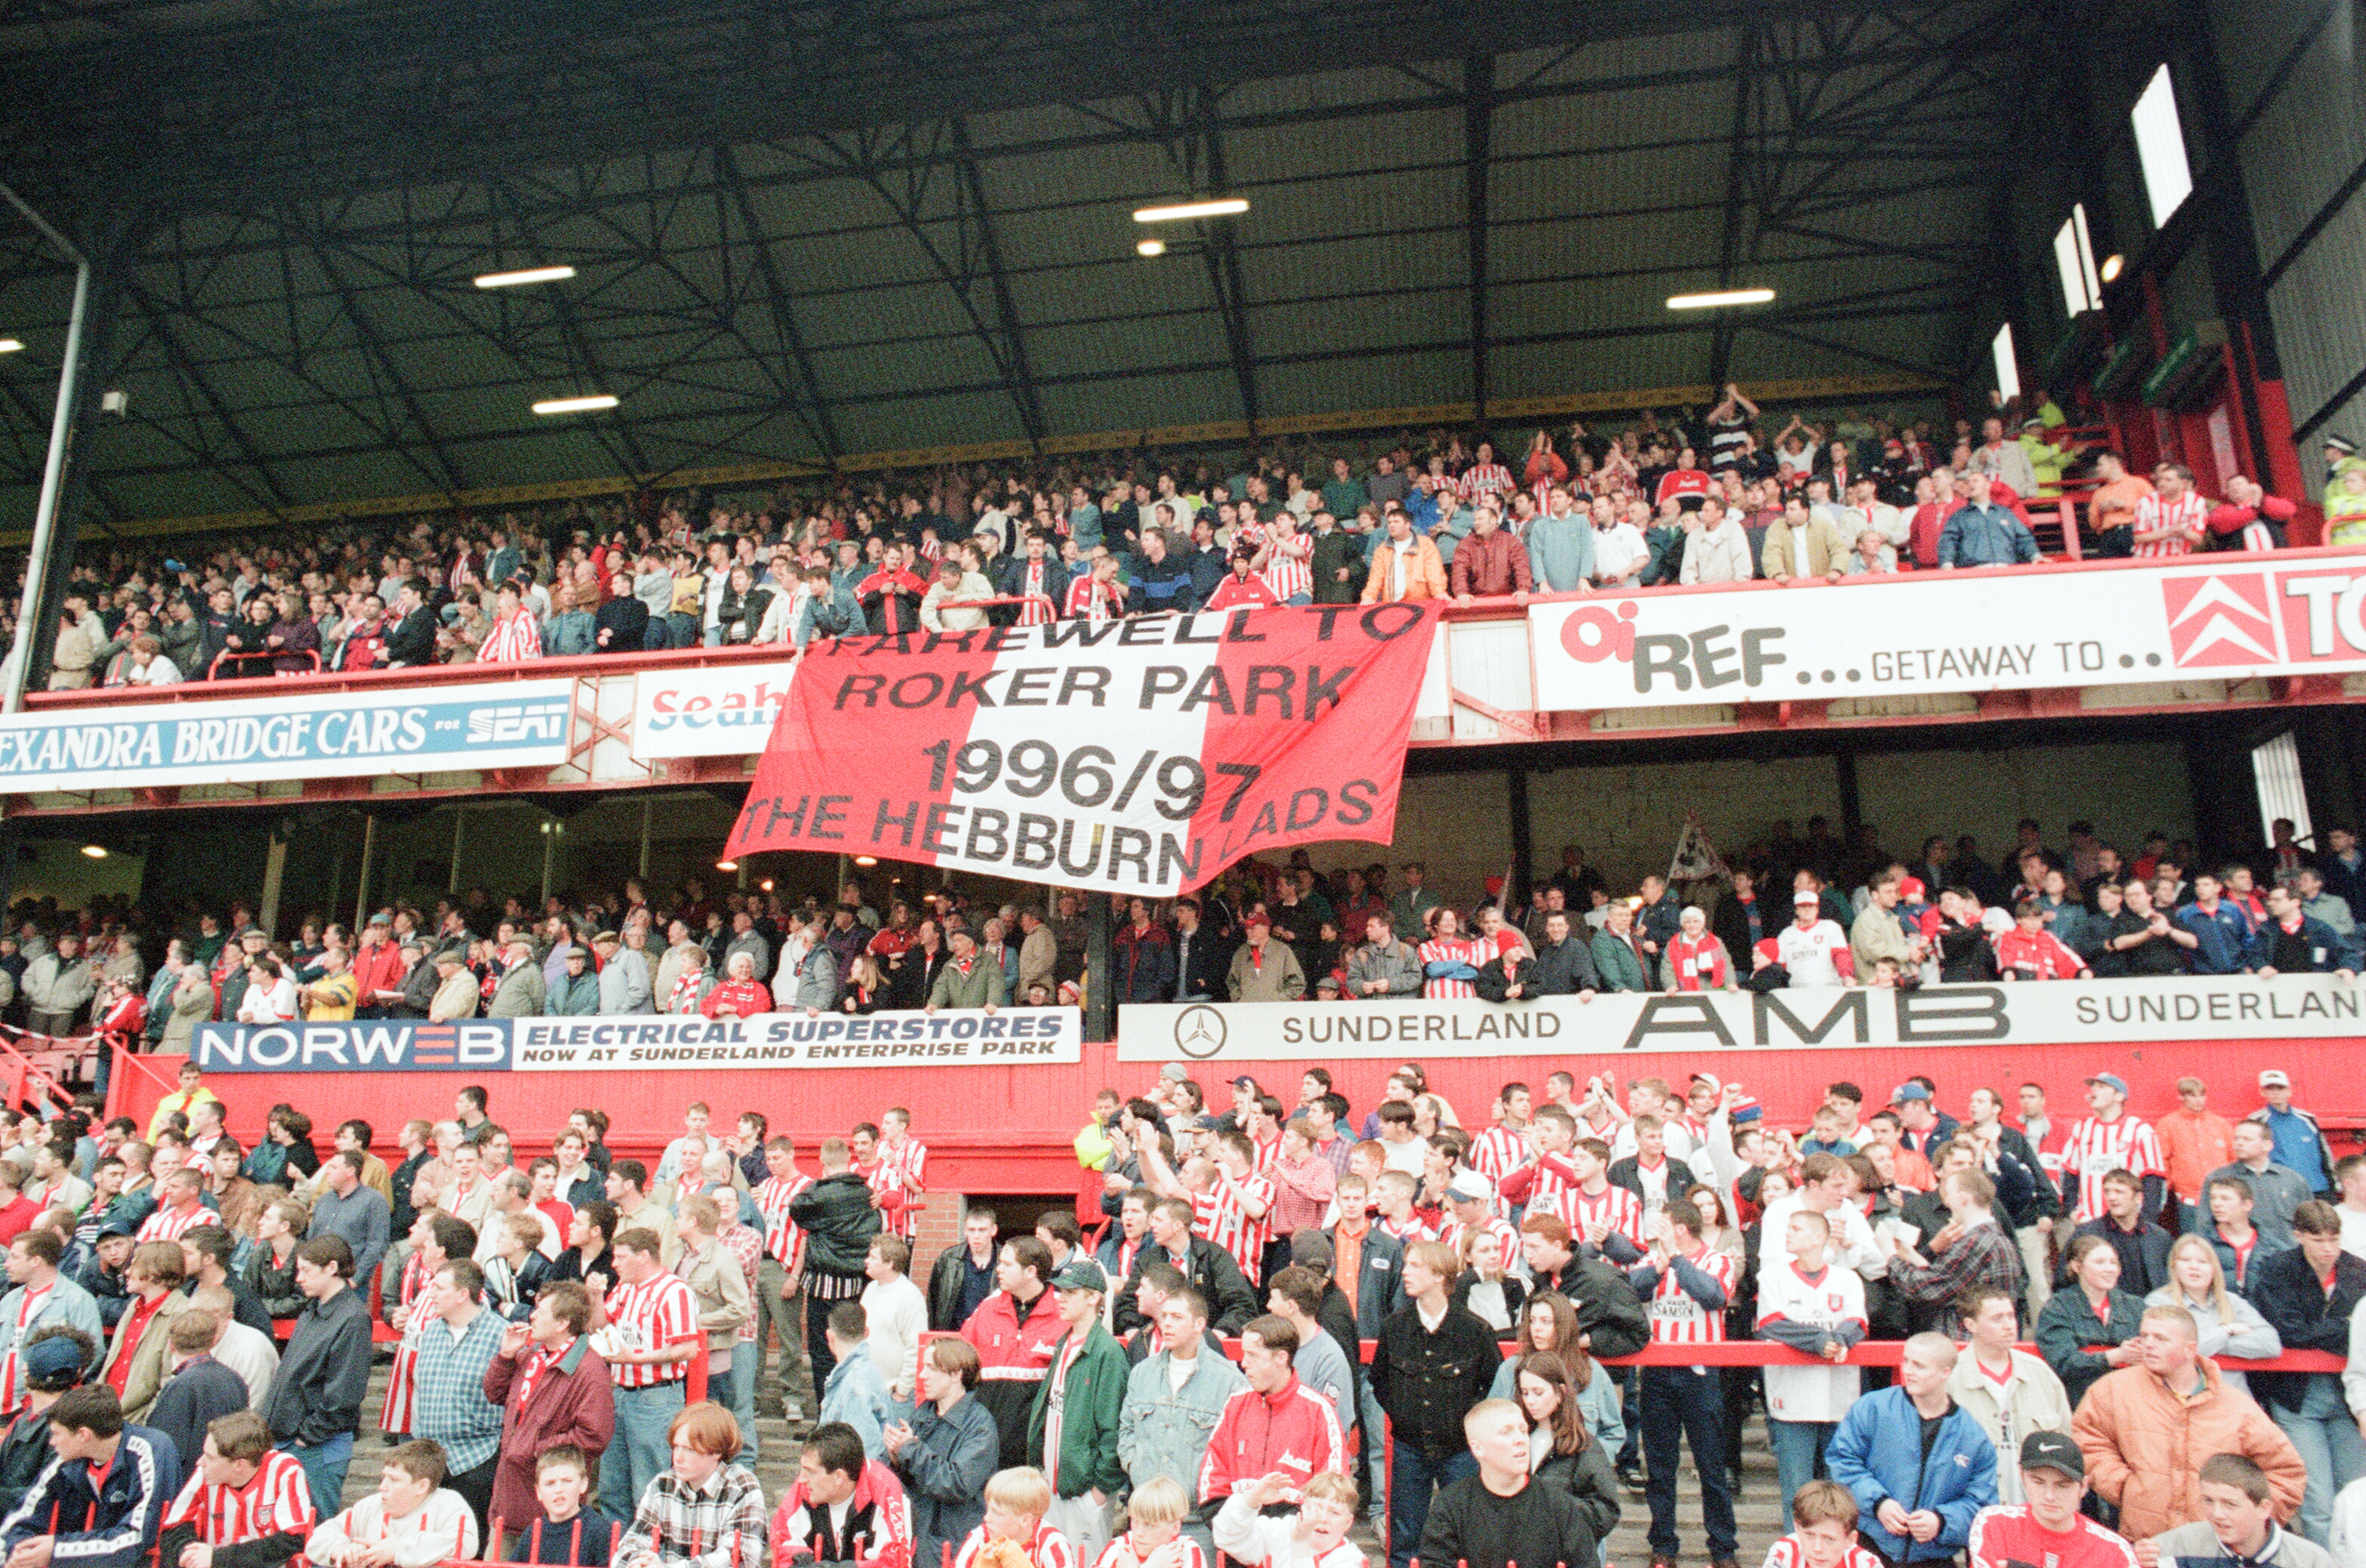 Tales From The Stands: Sunderland 3 Everton 0 (1997) - Roker Park gets a fitting league send-off